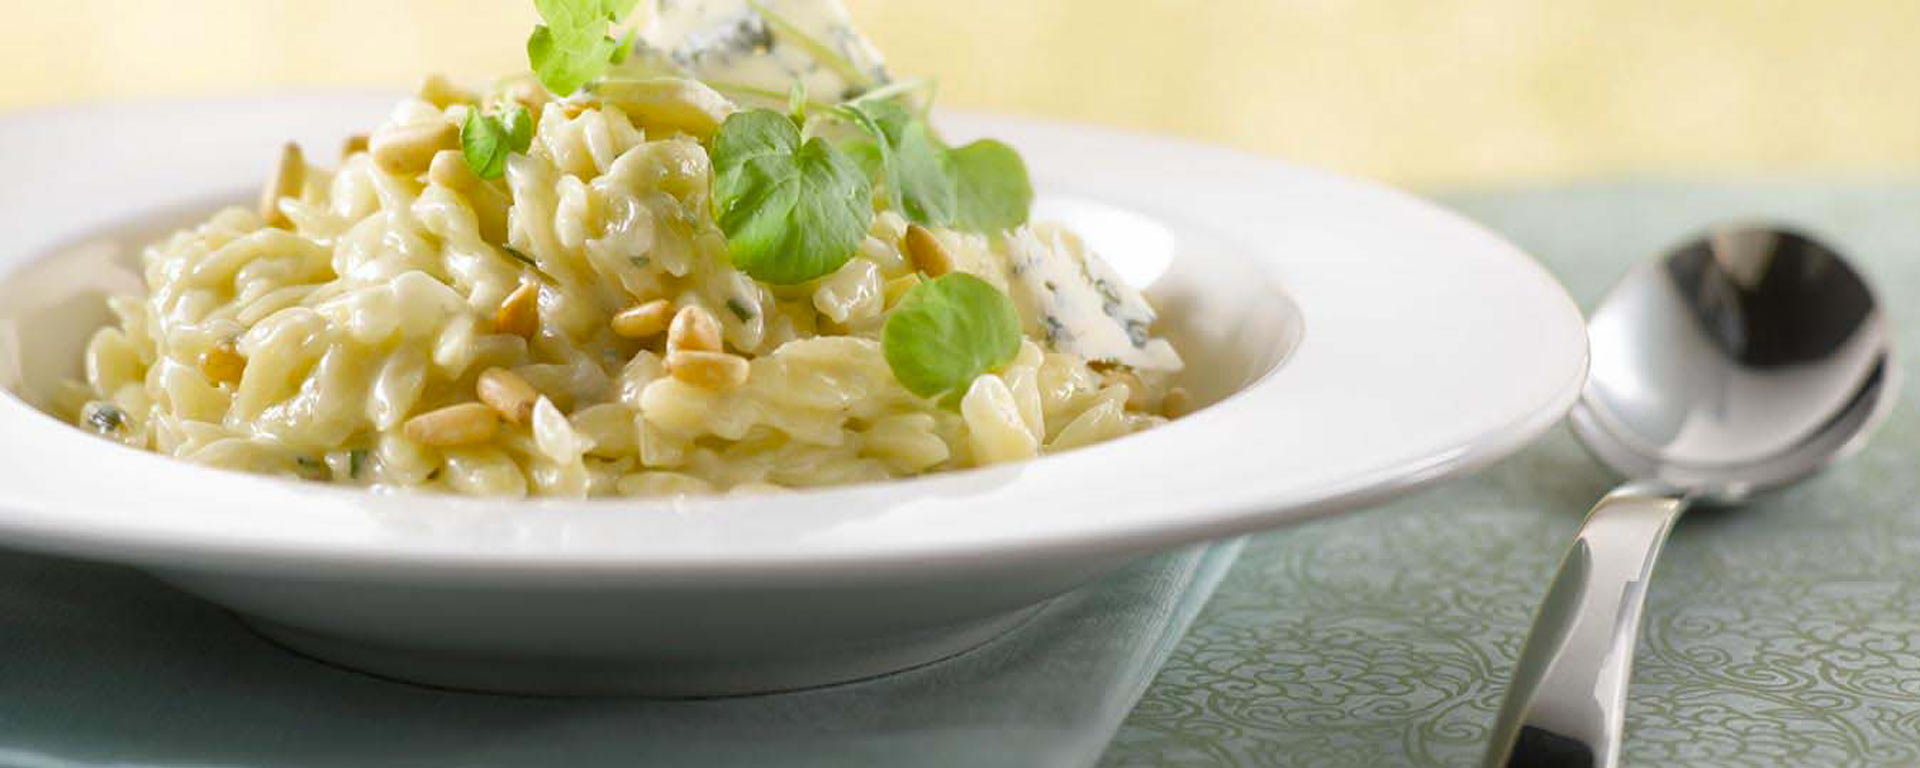 Photo for - Risotto d'orzo